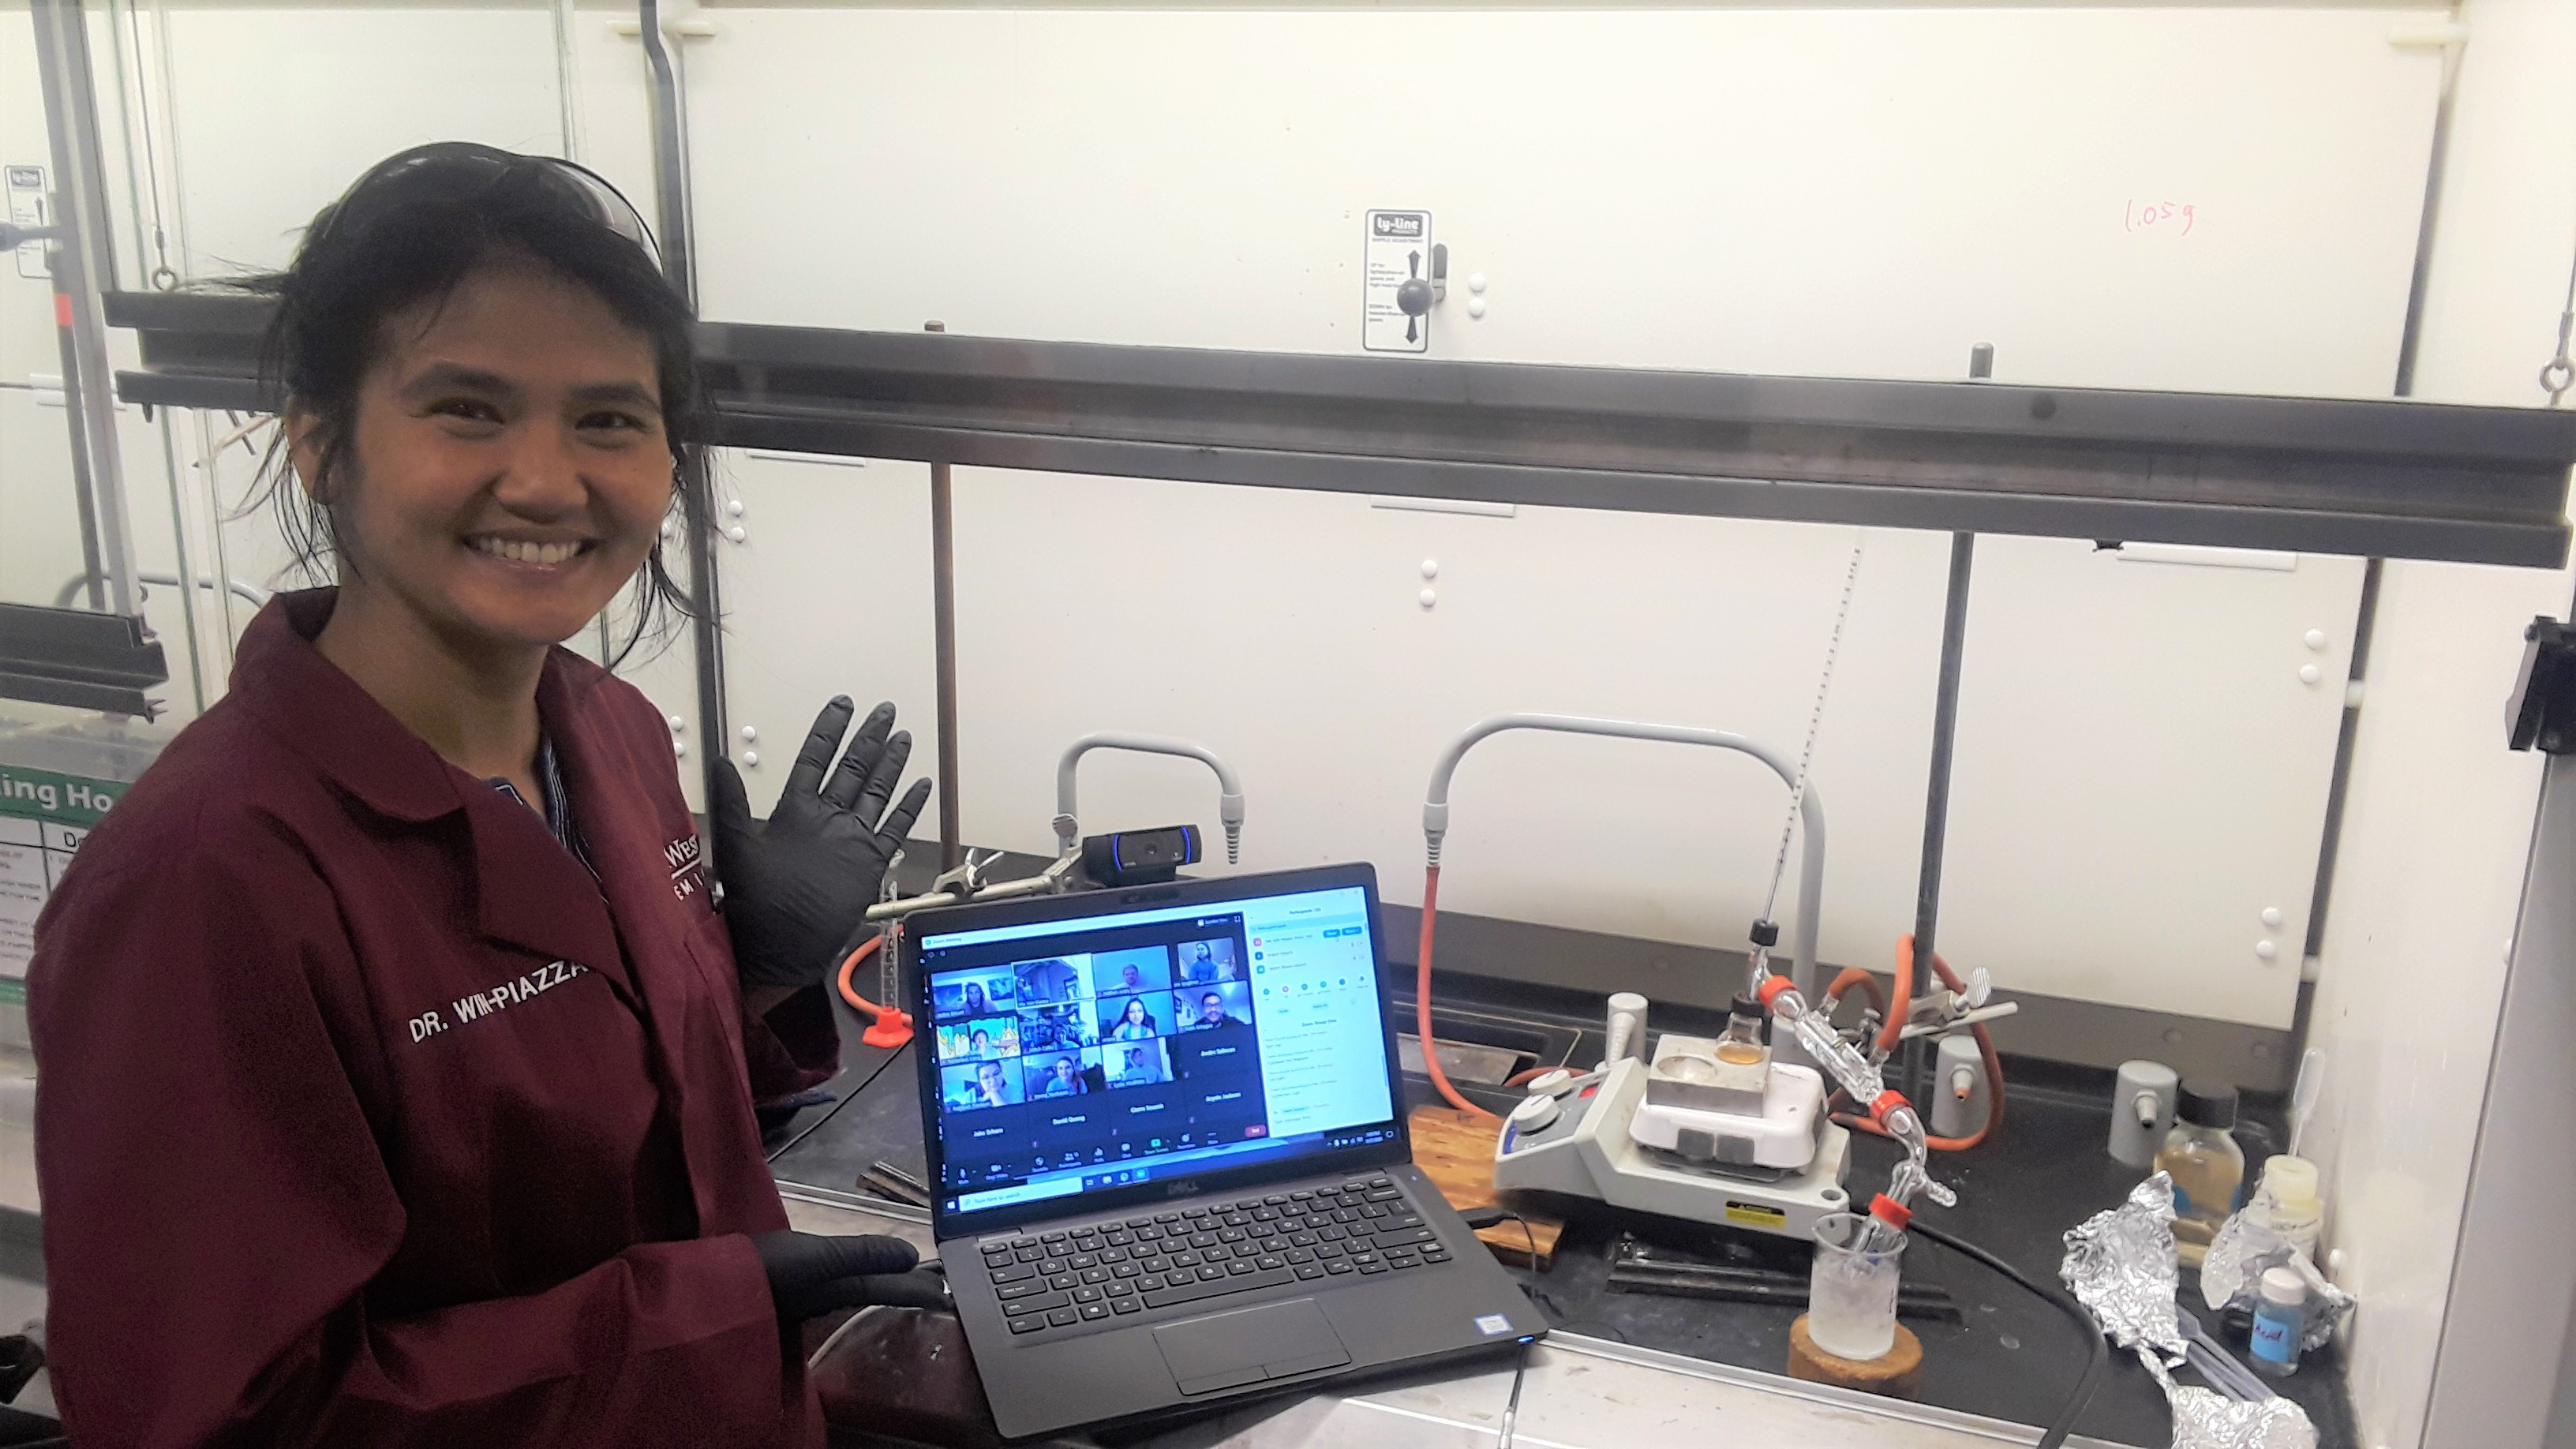 Hla Win-Piazza, the CHEM 354 lab coordinator, works with her class in the lab via Zoom.